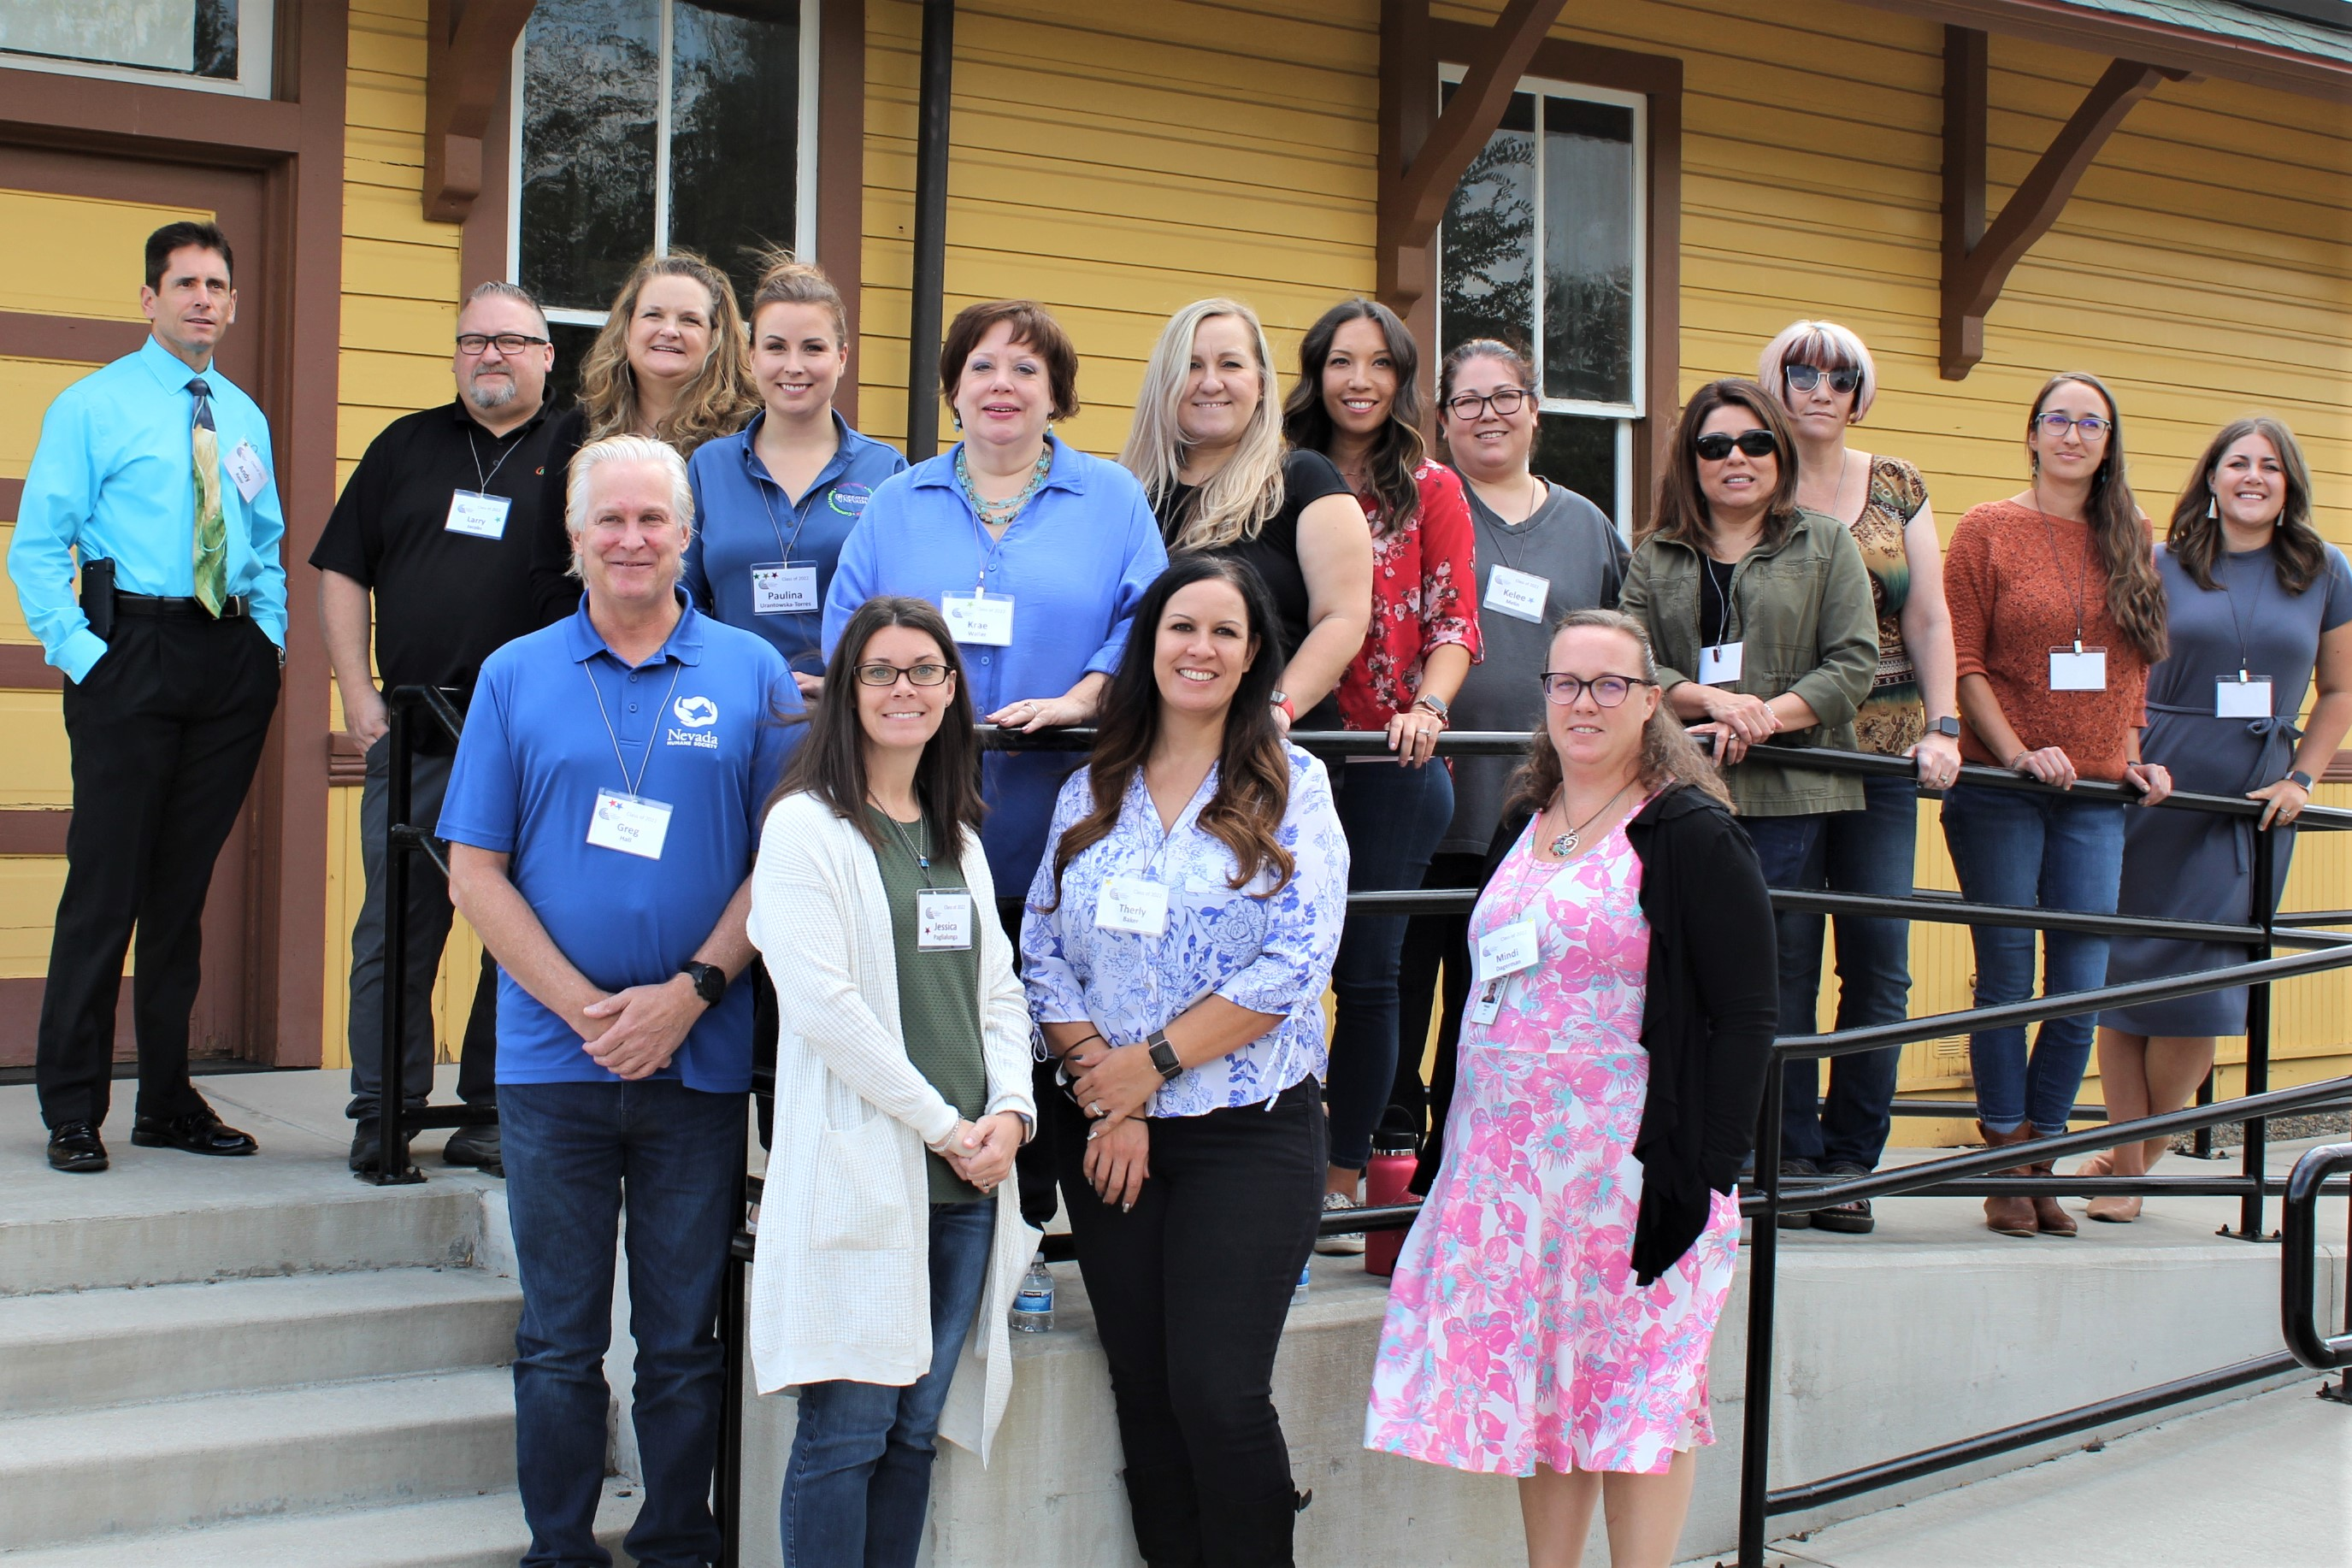 Introducing the Carson City Leadership Institute Class of 2022